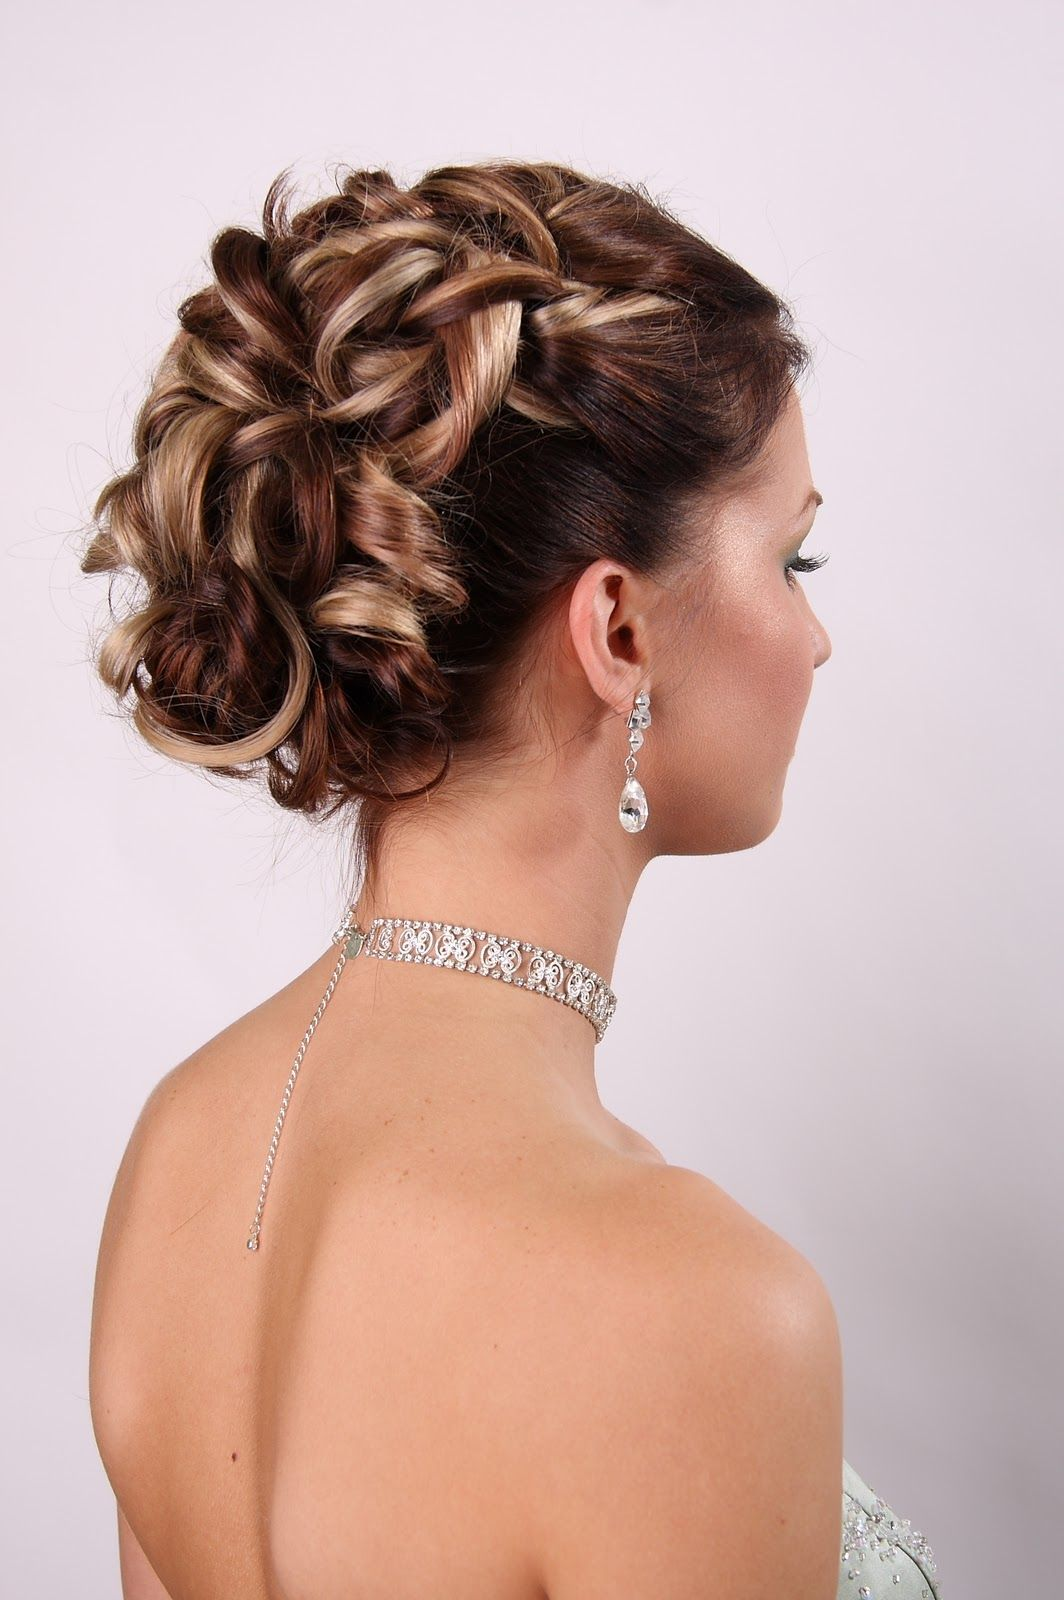 20 classic wedding hairstyles long hair | bridesmaid hairstyles